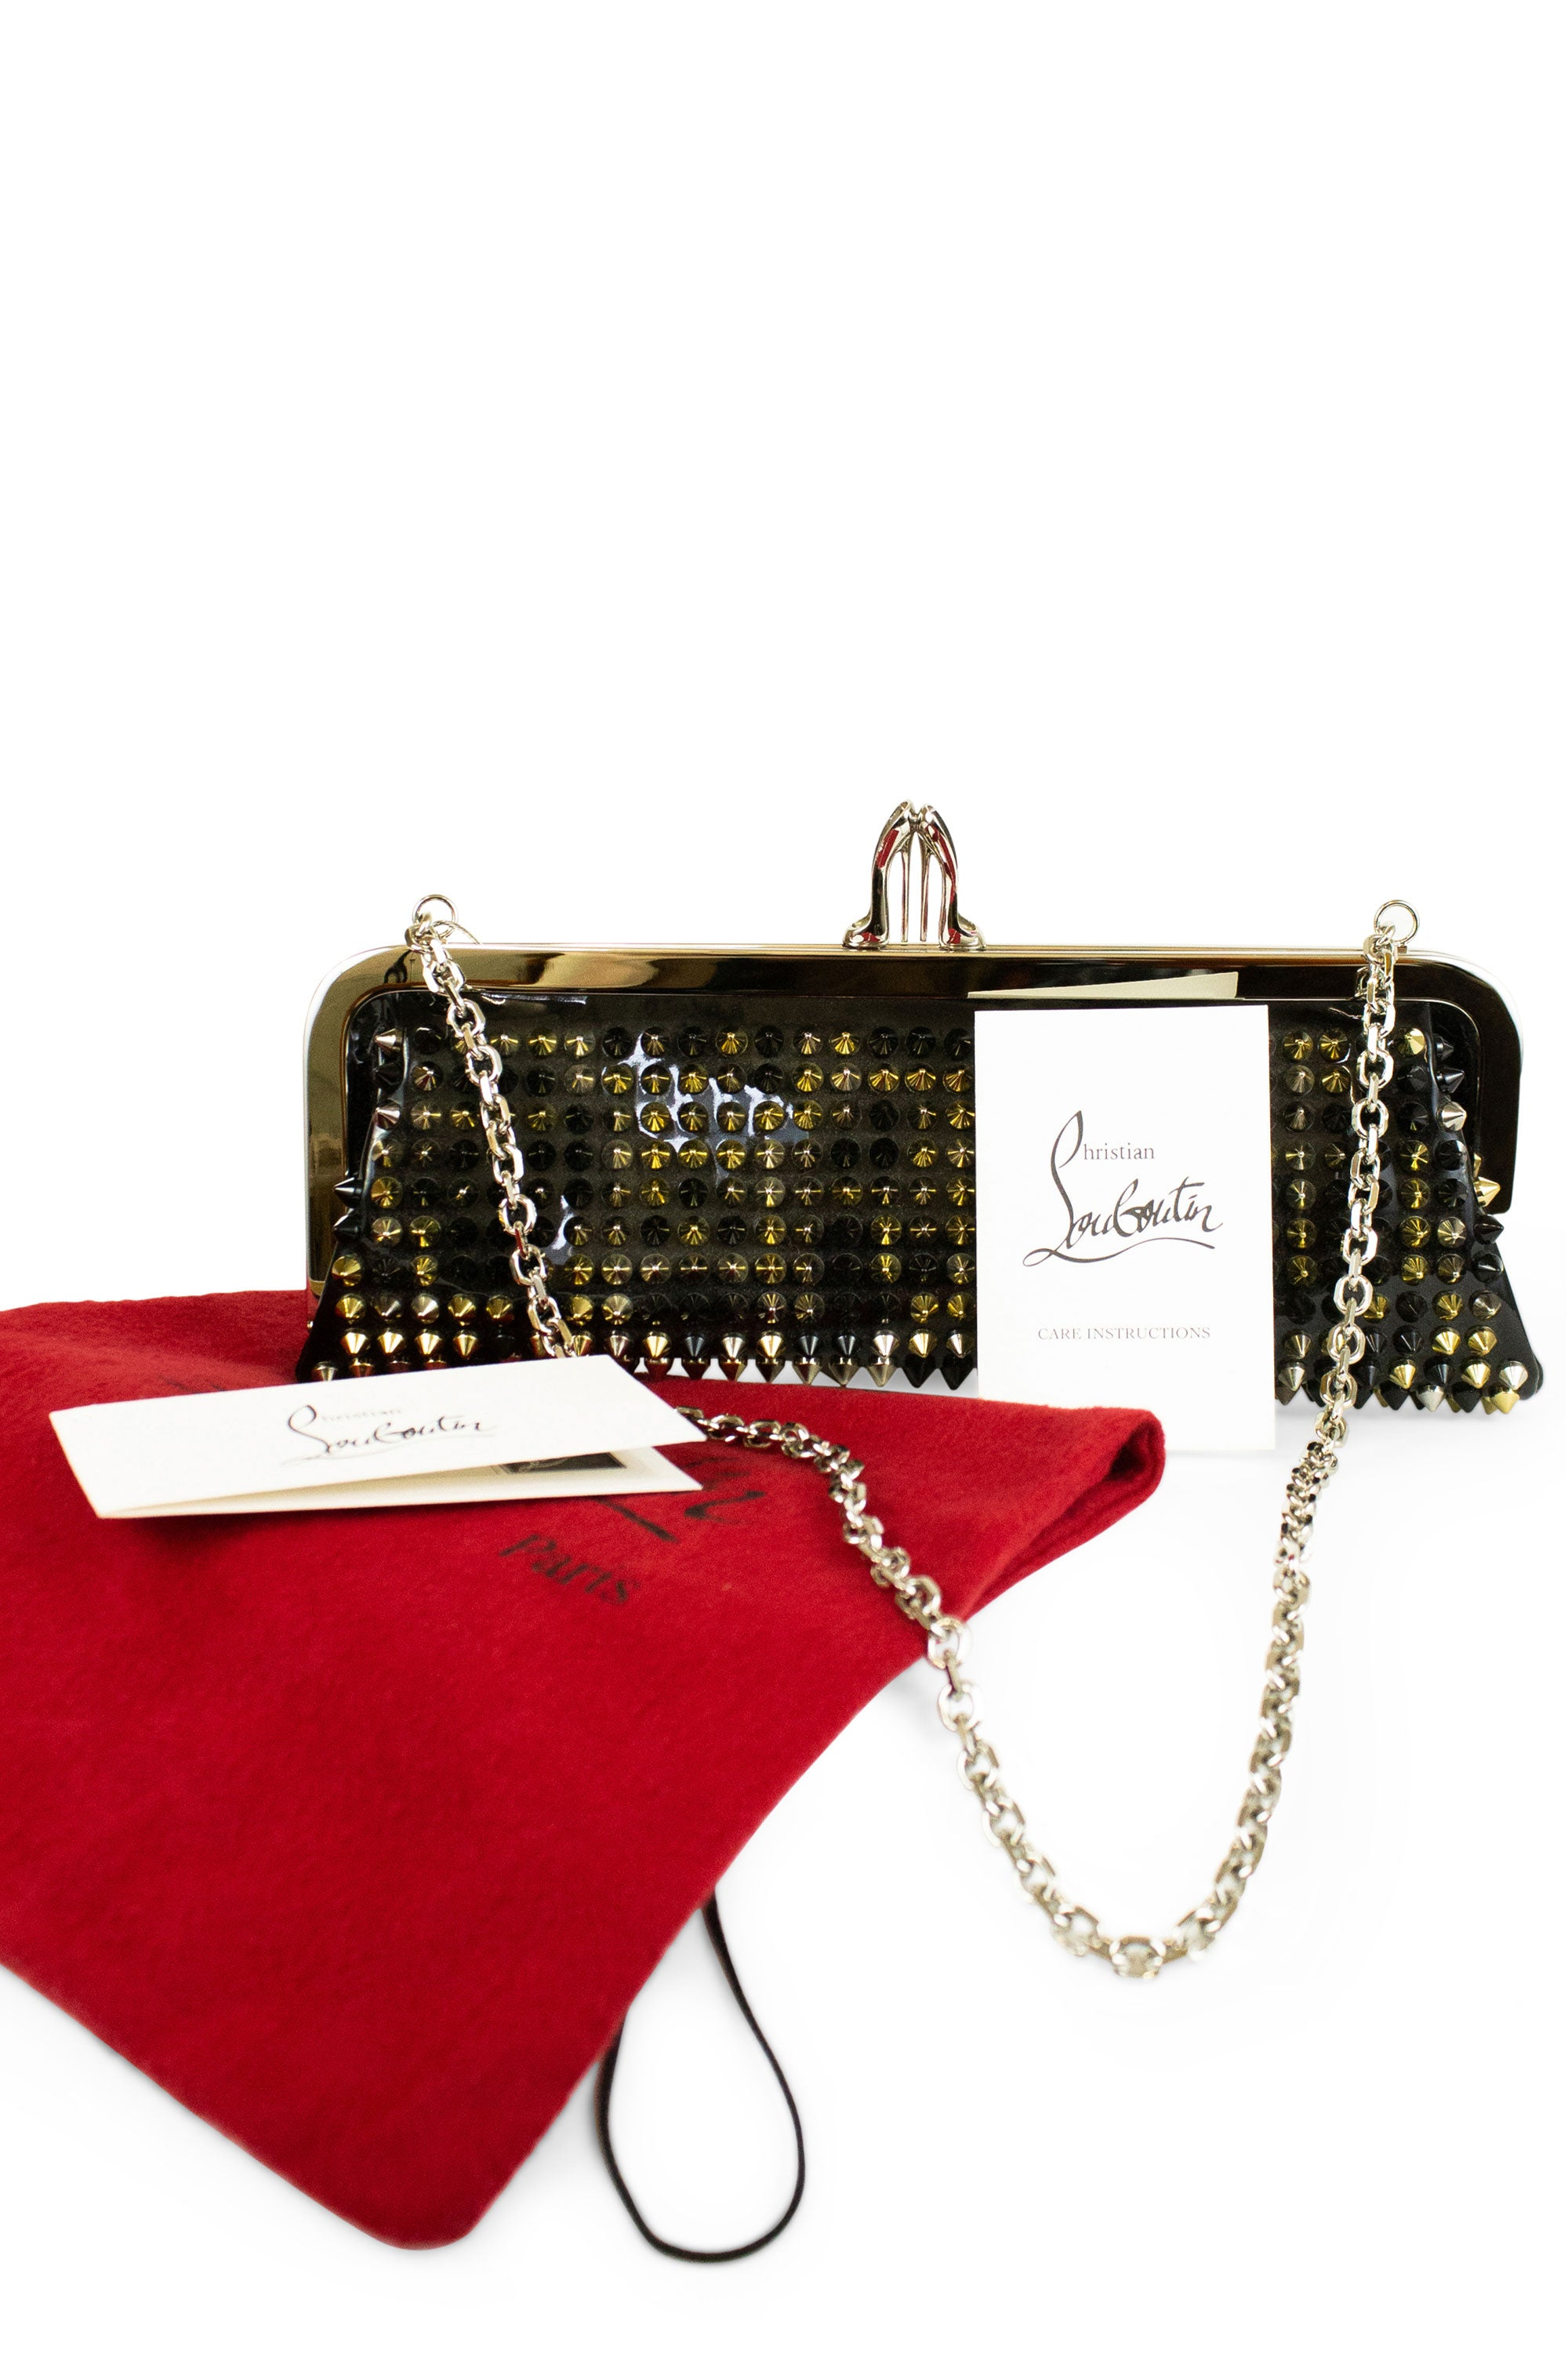 CHRISTIAN LOUBOUTIN Clutch Spikes Miss Loubi